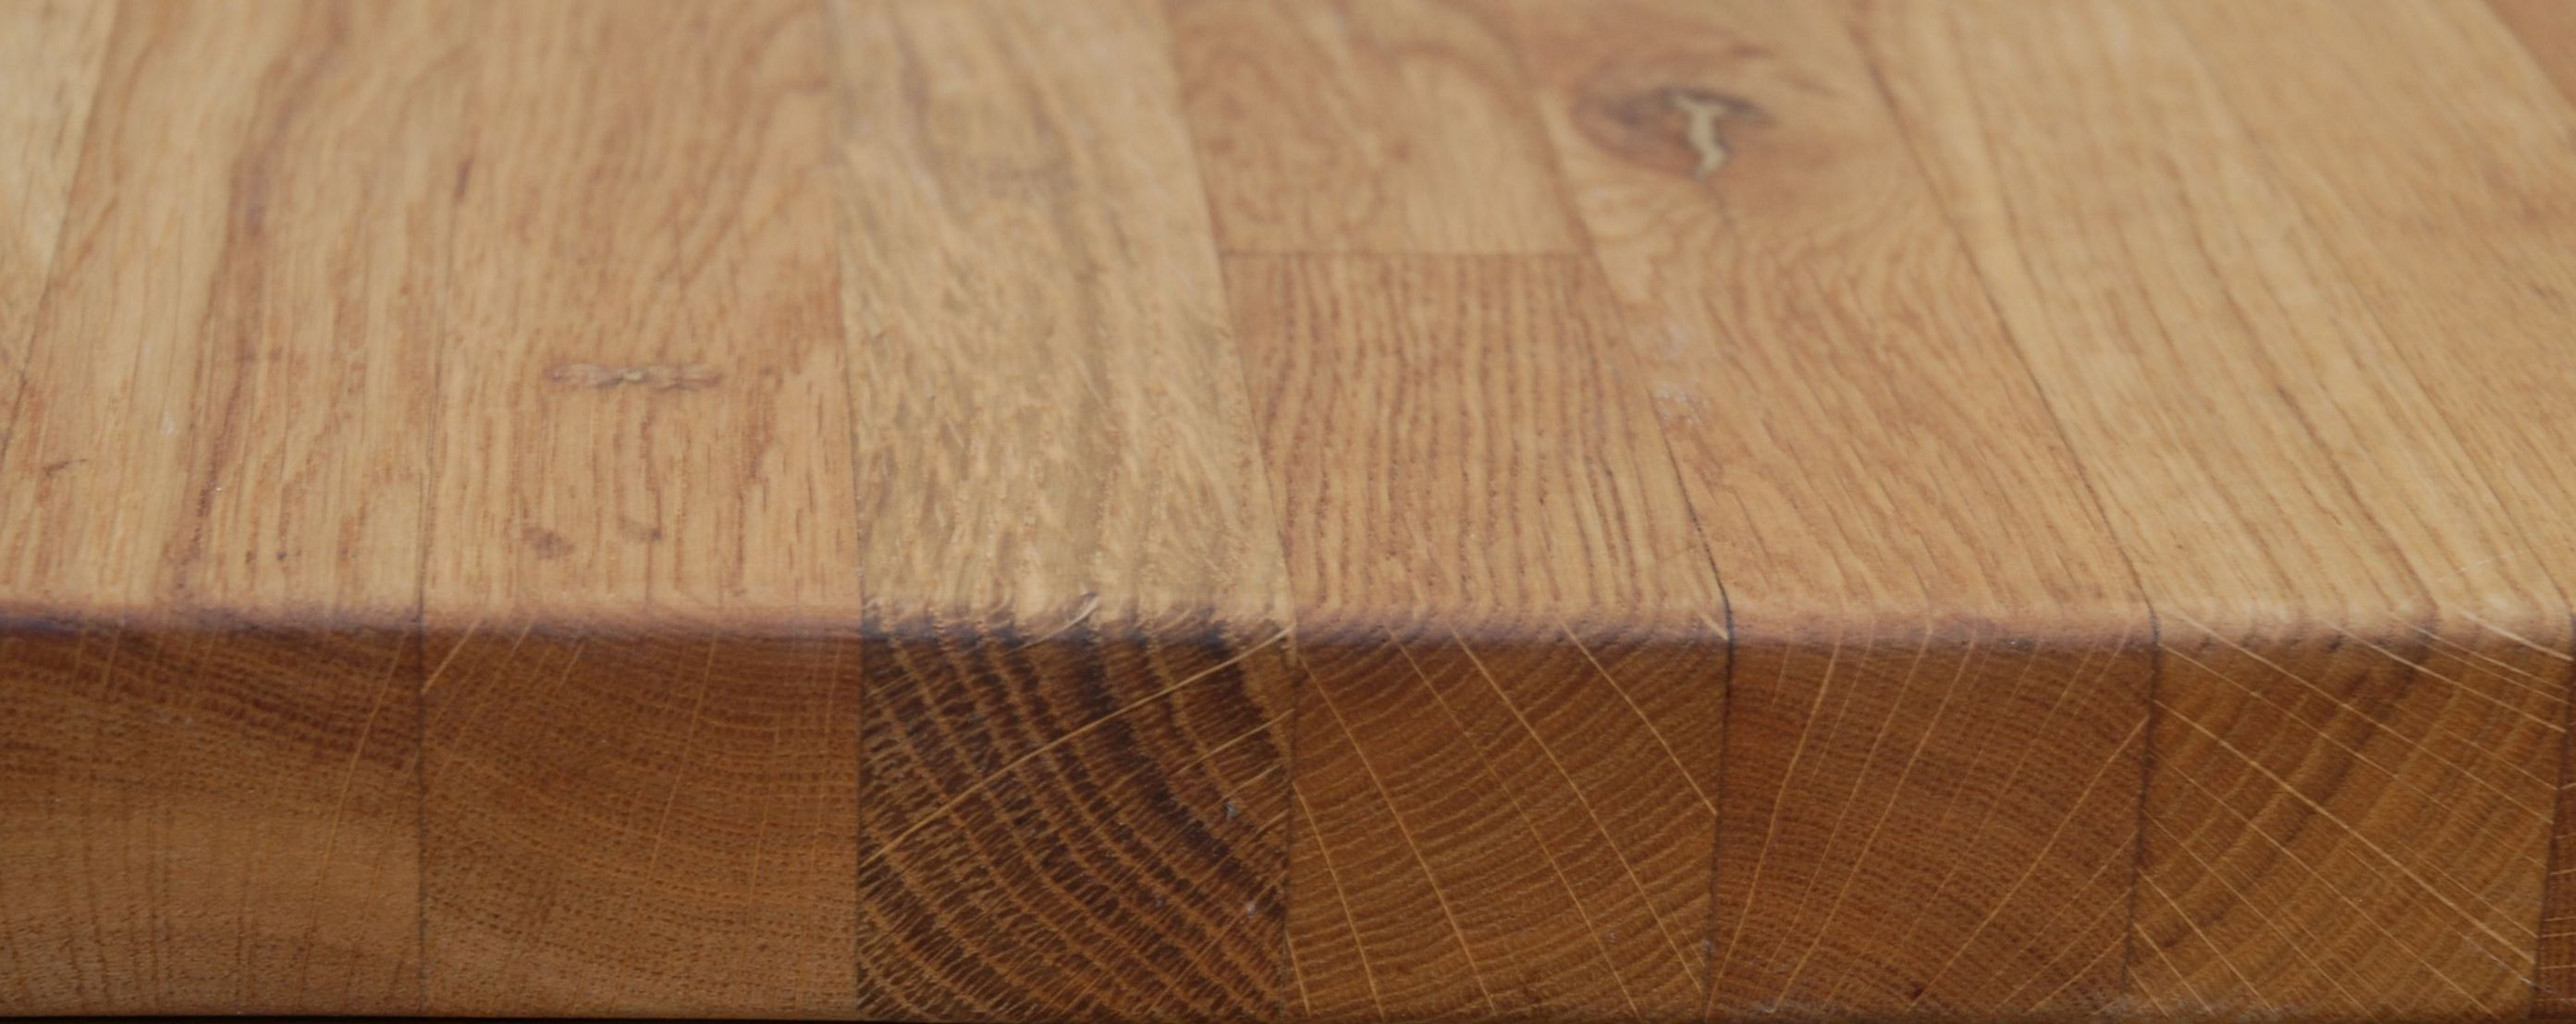 Welcome to Tung Oil  tungoilcouktungoilcouk The Tung Oil UK Website - Butchers Chopping Block